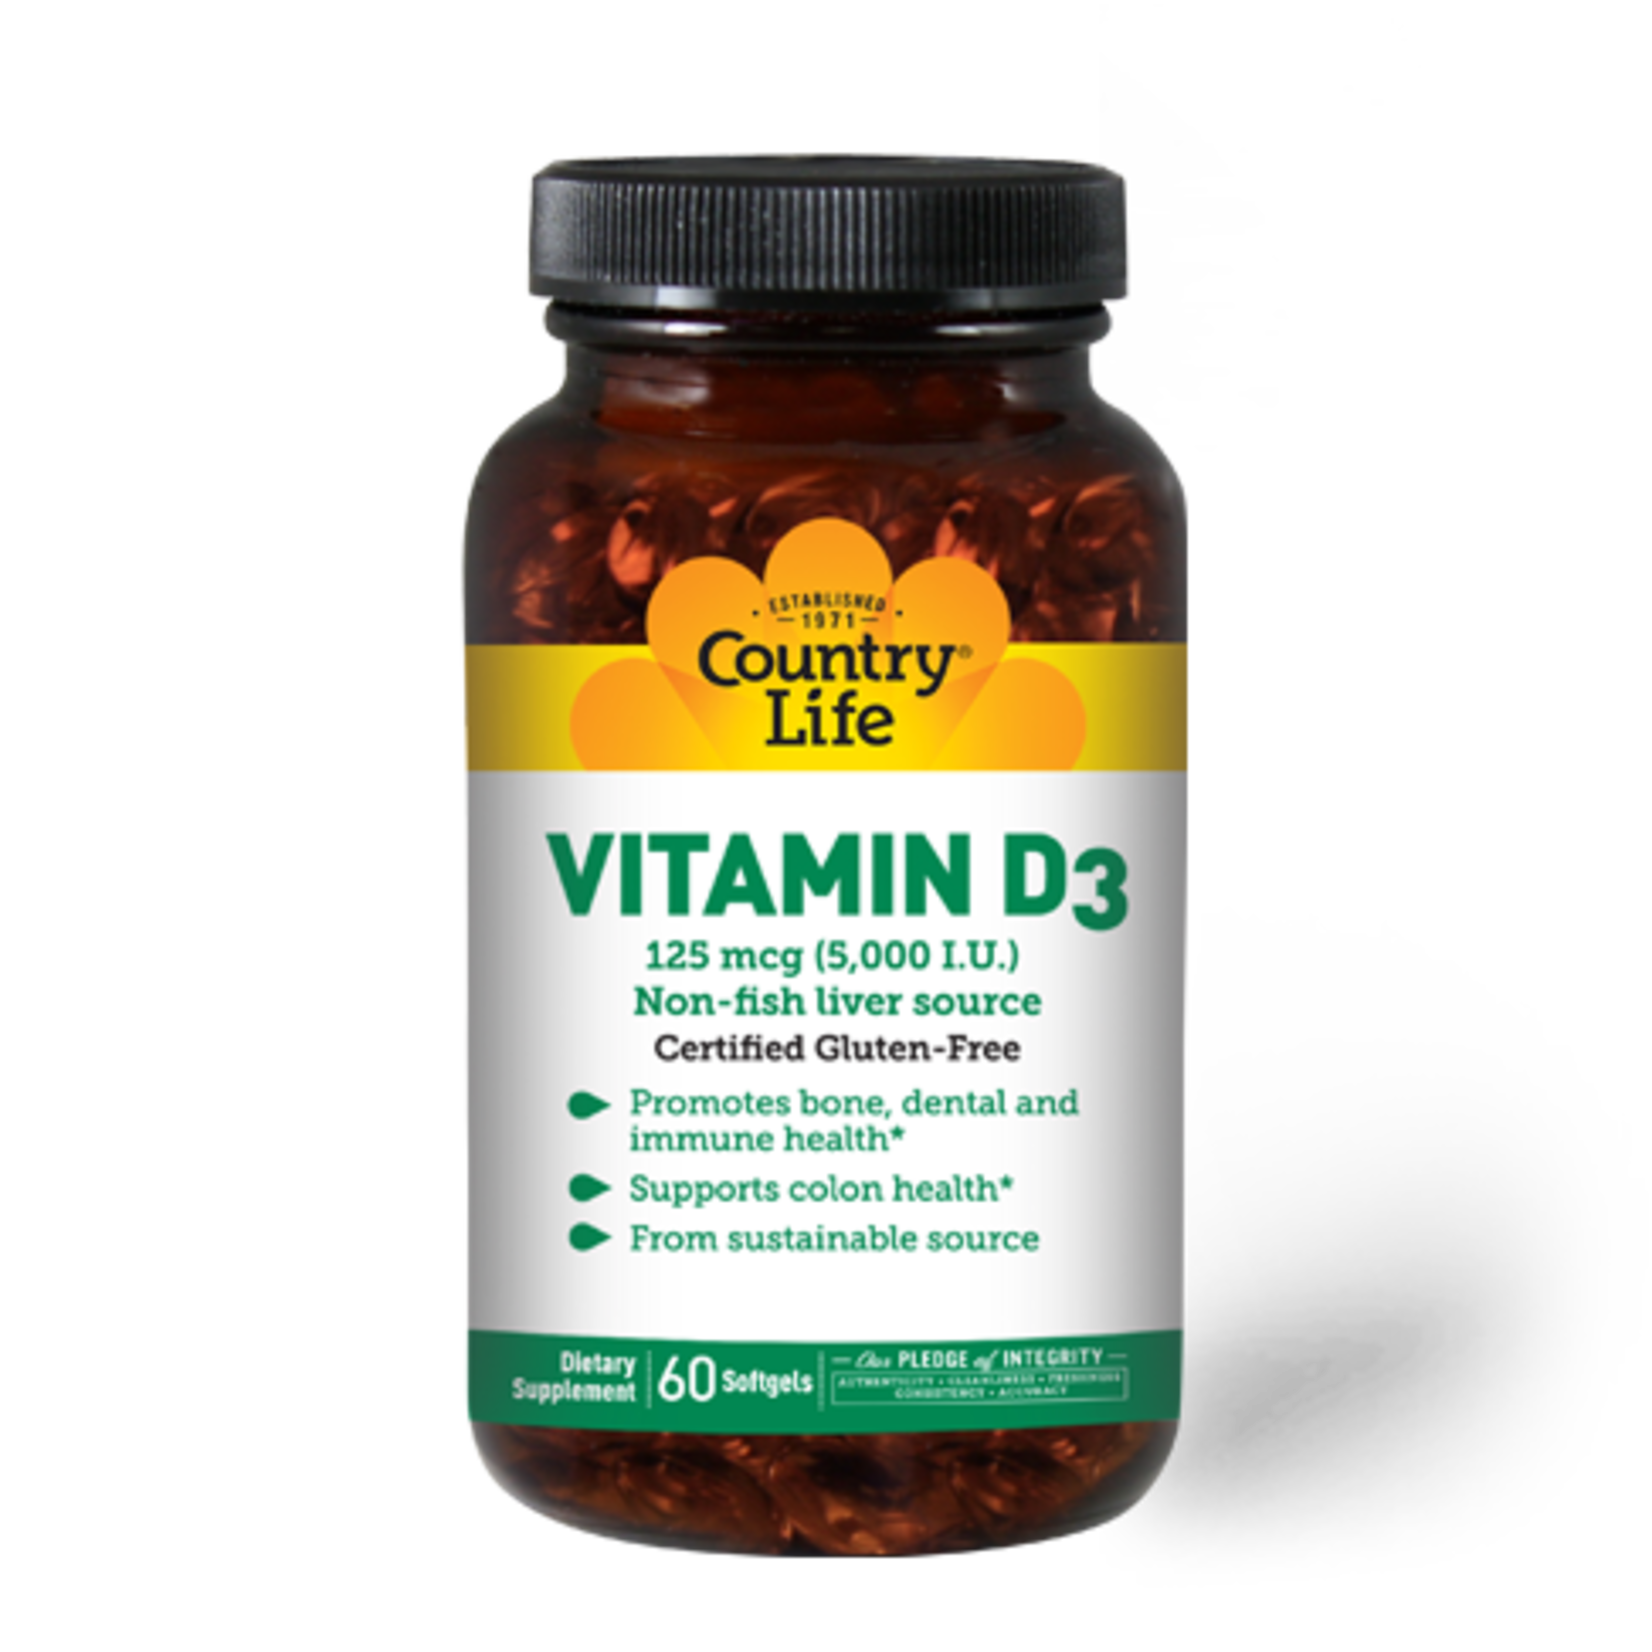 Country Life Country Life Vitamin D3 200 softgels